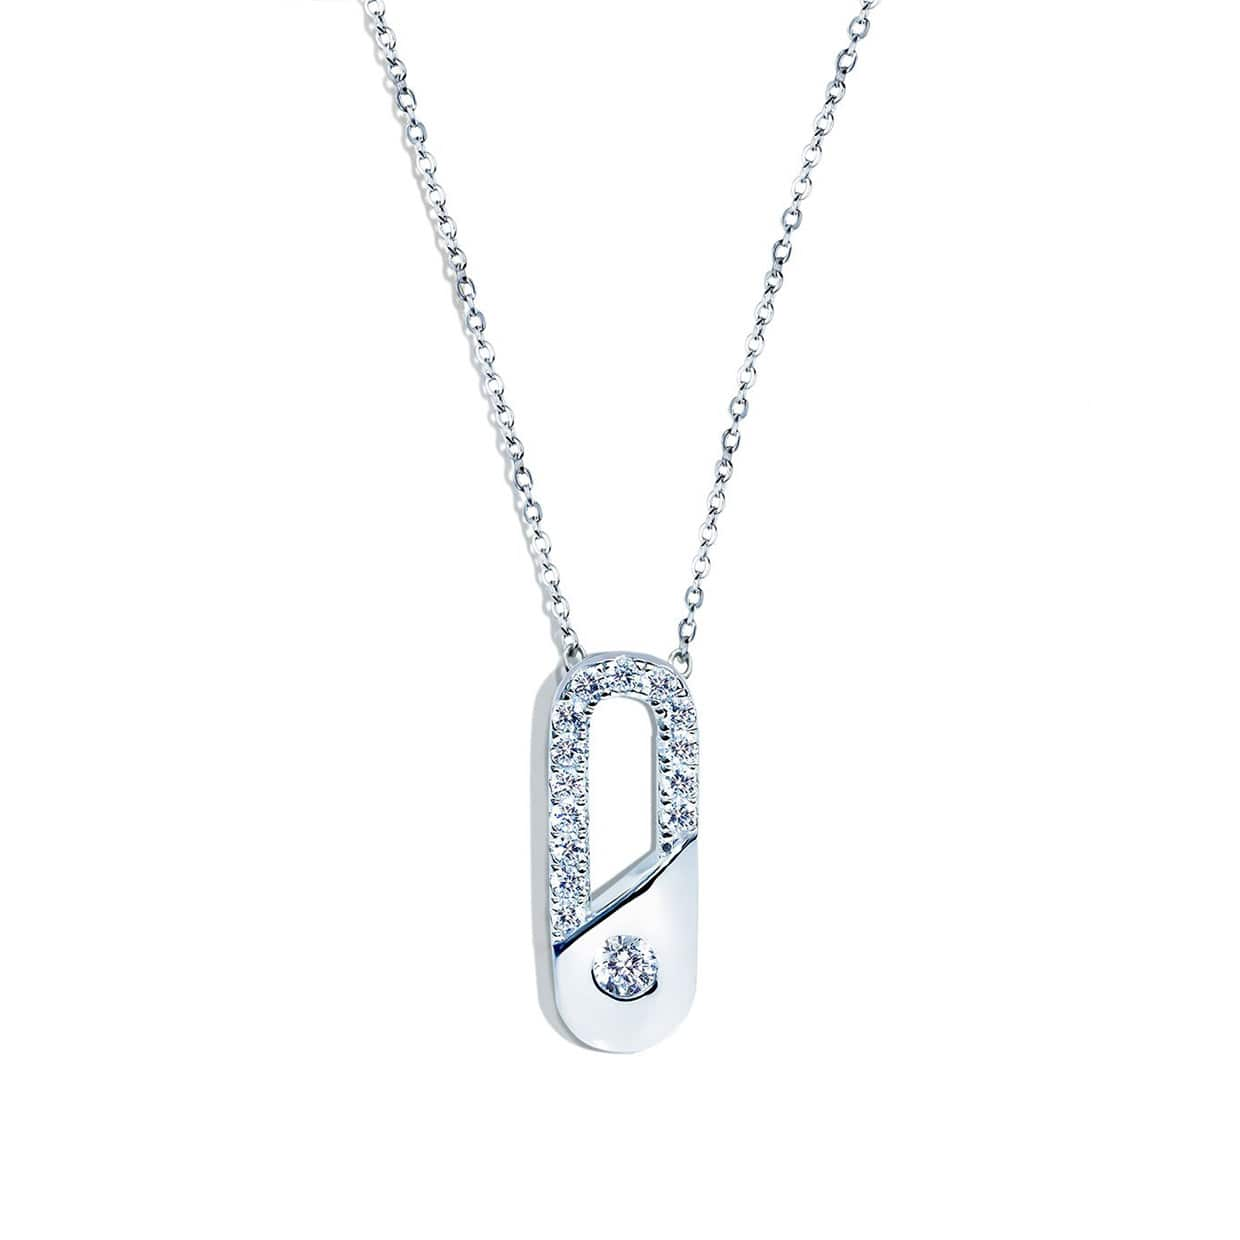 Abelstedt A Silver Clip Necklace